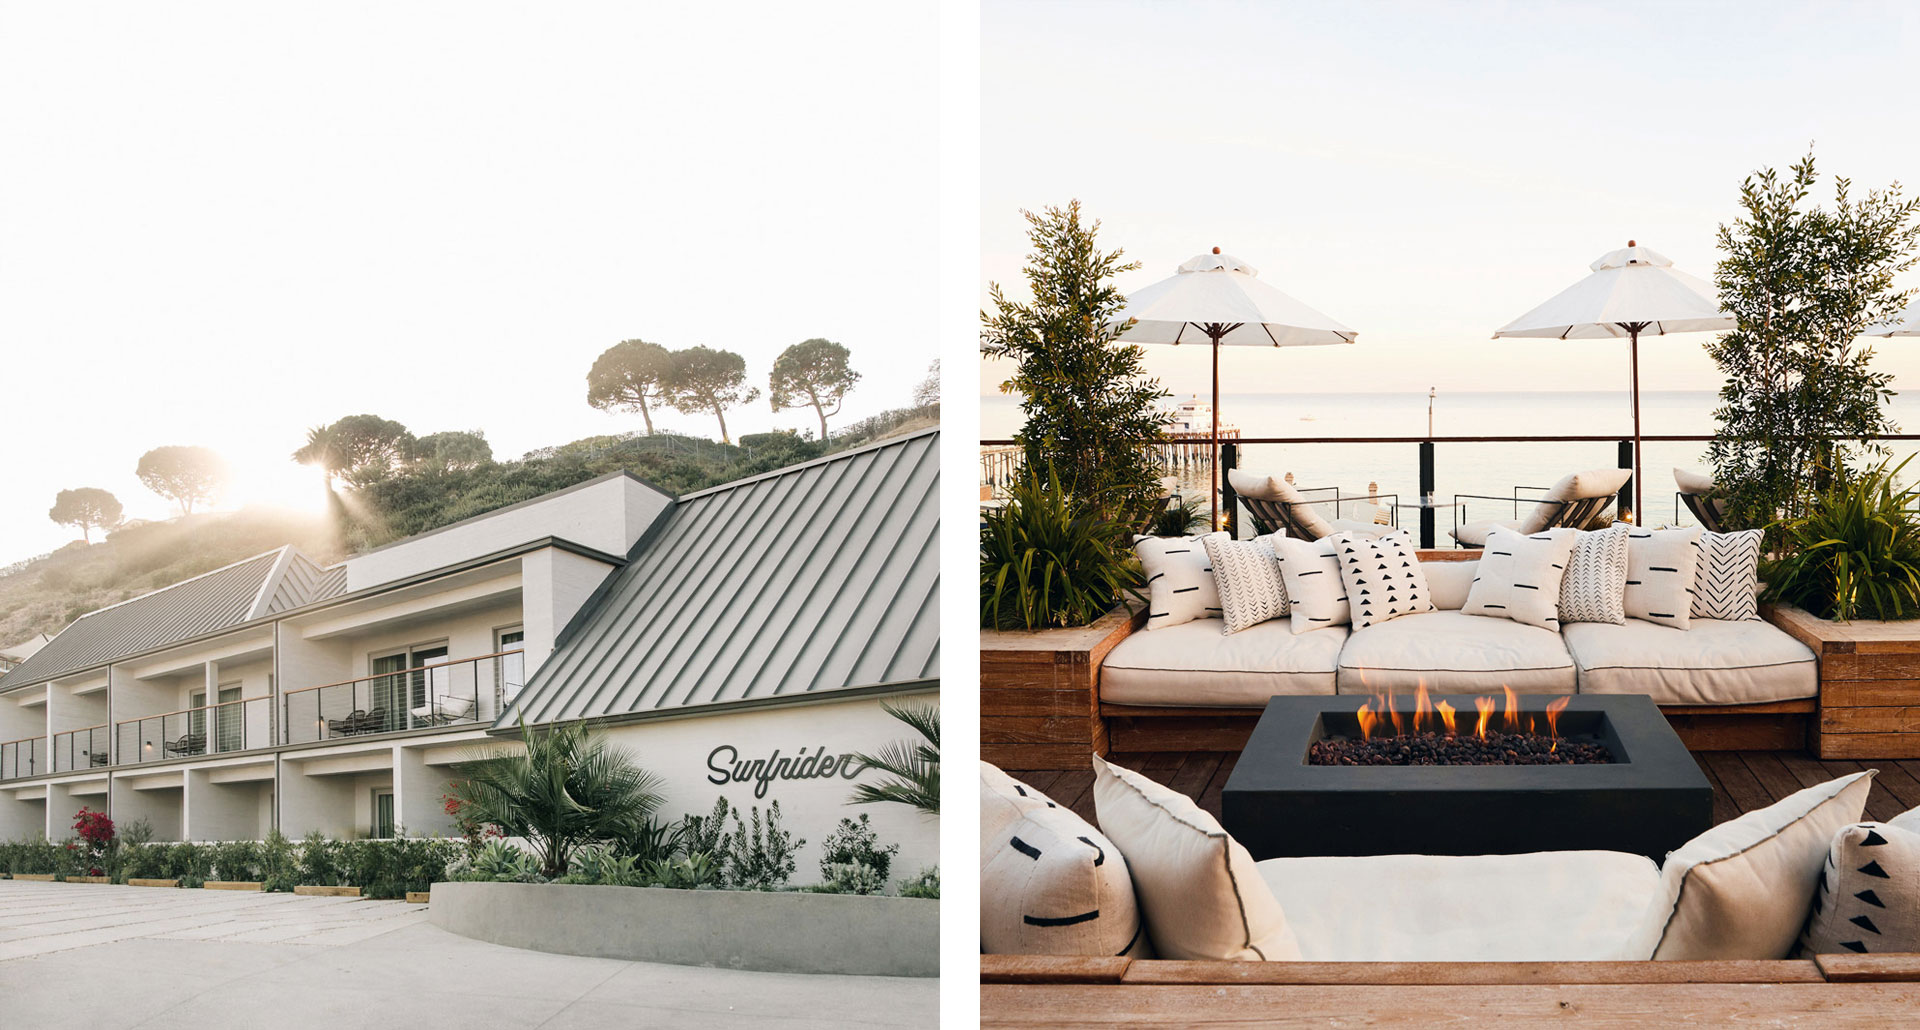 The Surfrider - boutique hotel in Malibu